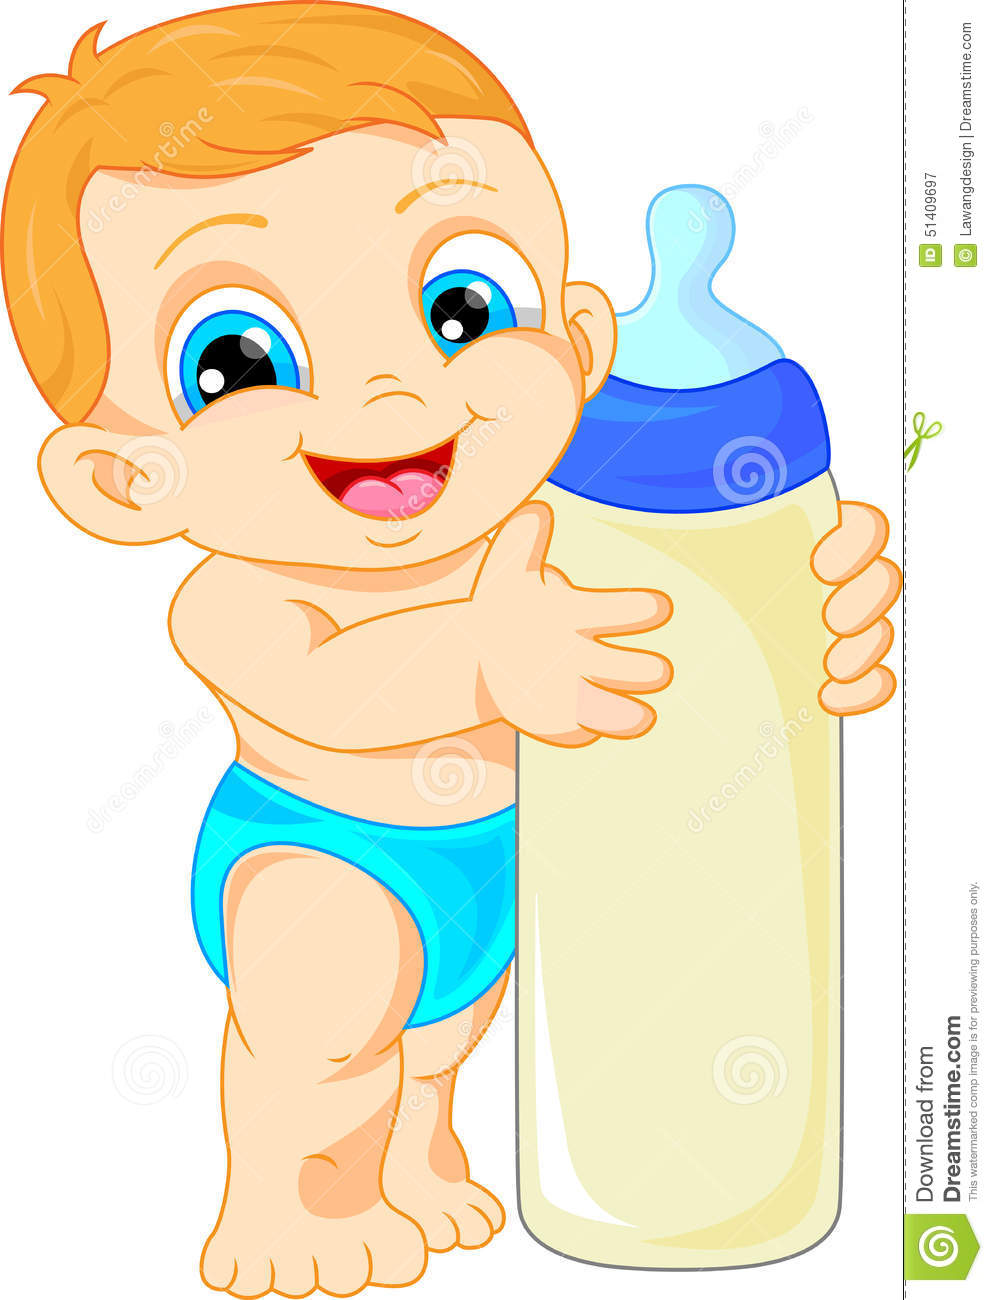 Cute baby cartoon stock vector. Illustration of young ...